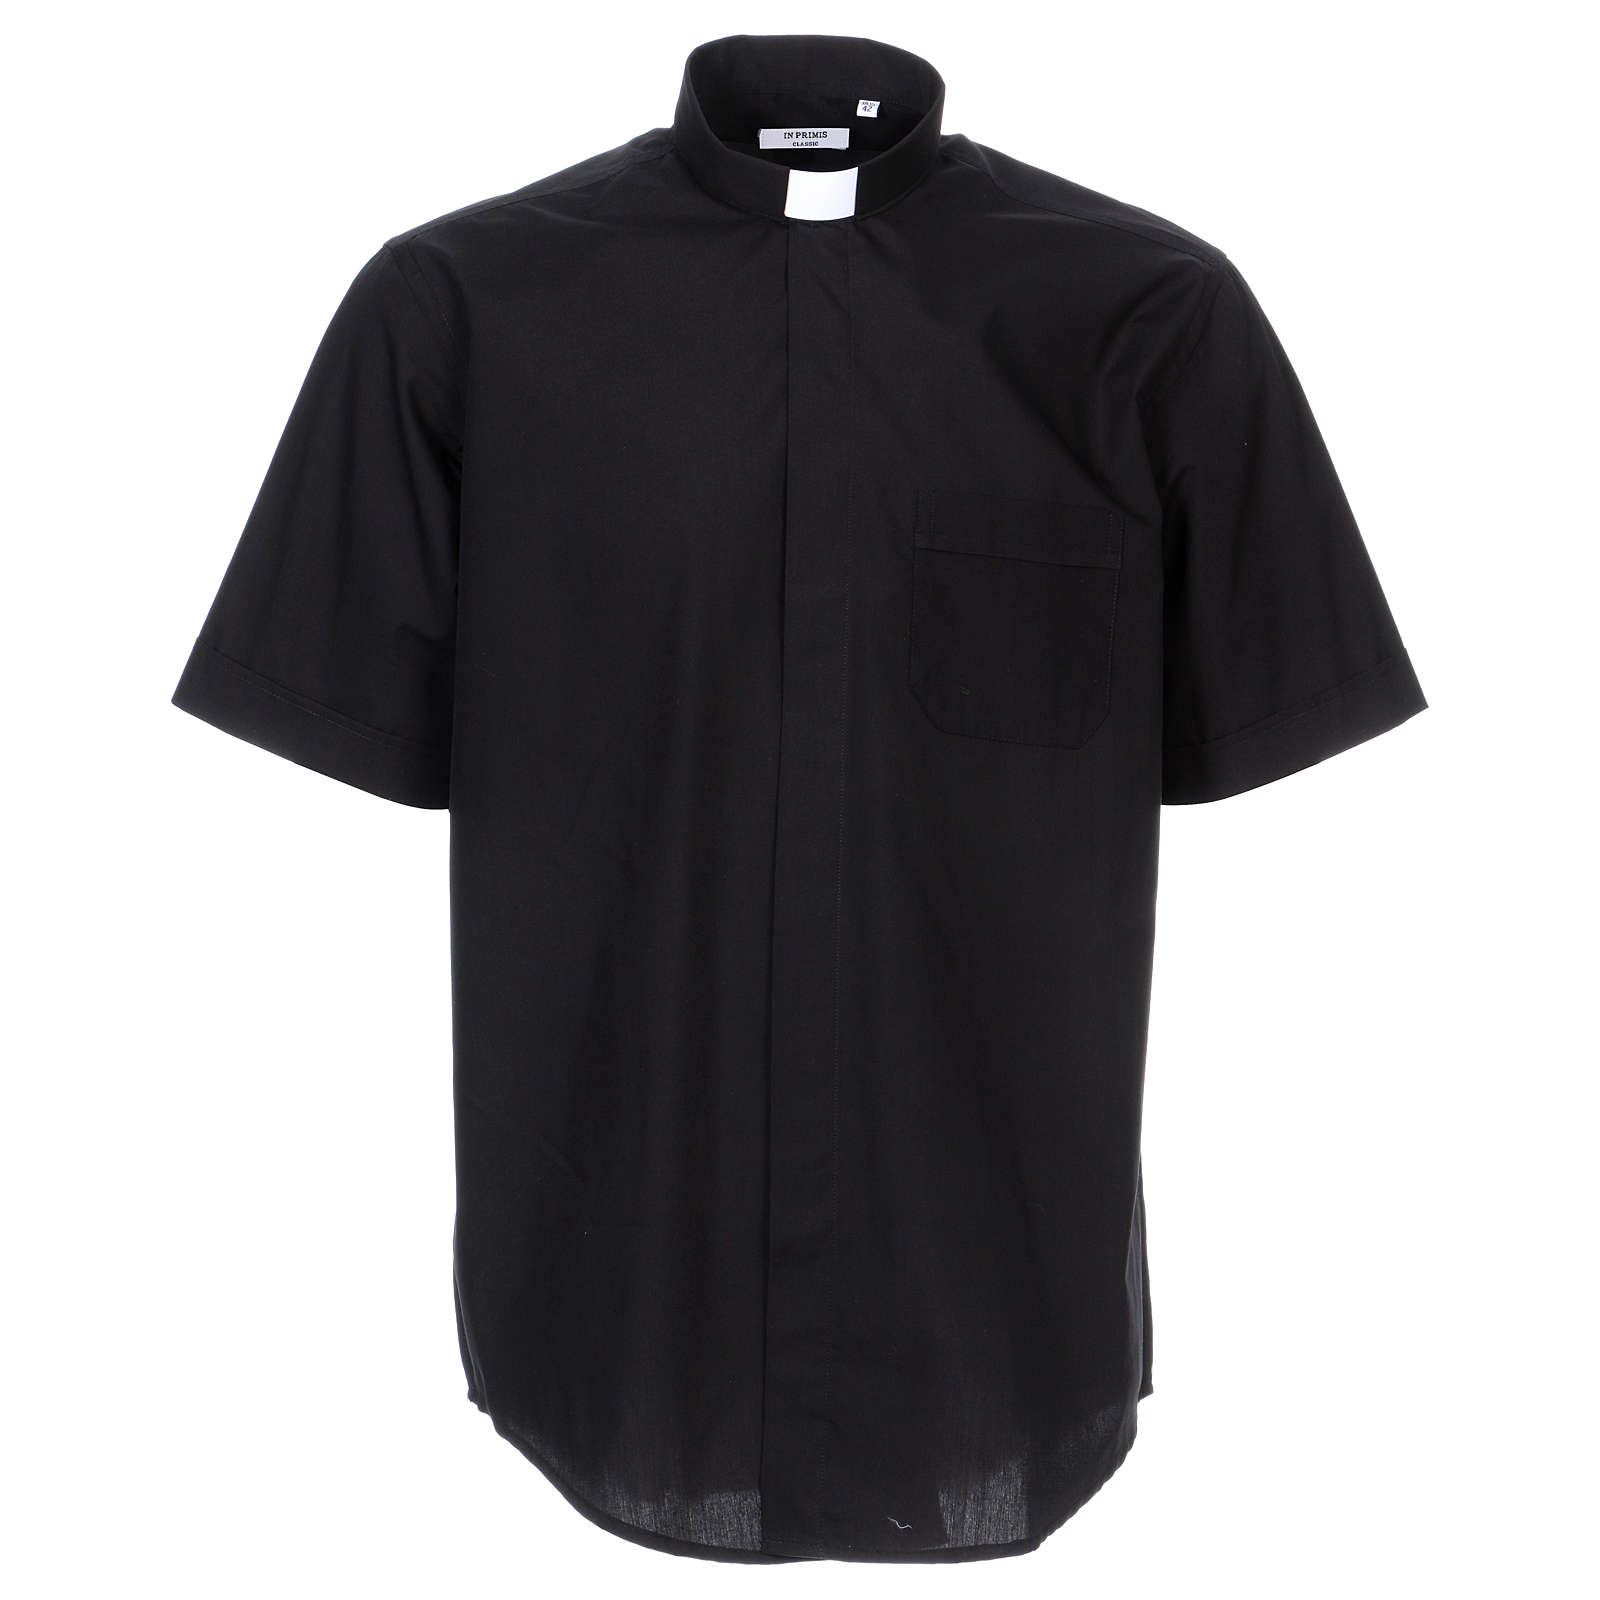 Short-sleeved clergy shirt in black cotton blend 4